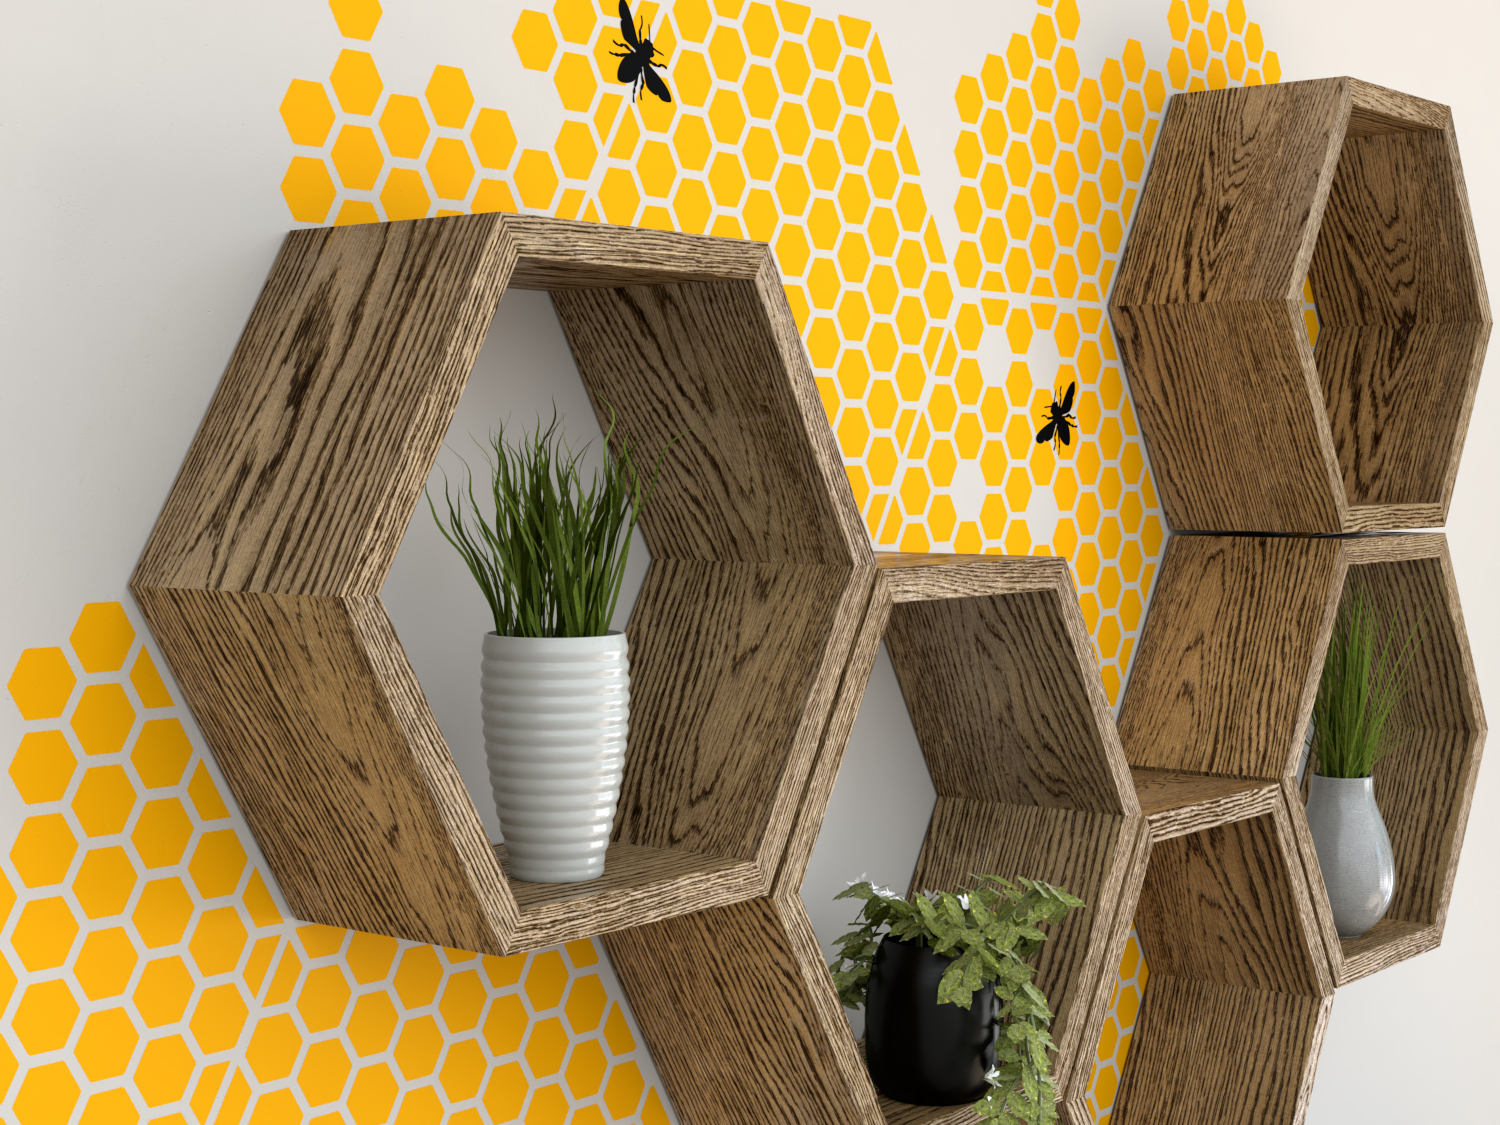 Vinyl Wall Decal Wall Stickers Honeycomb Decal Wall